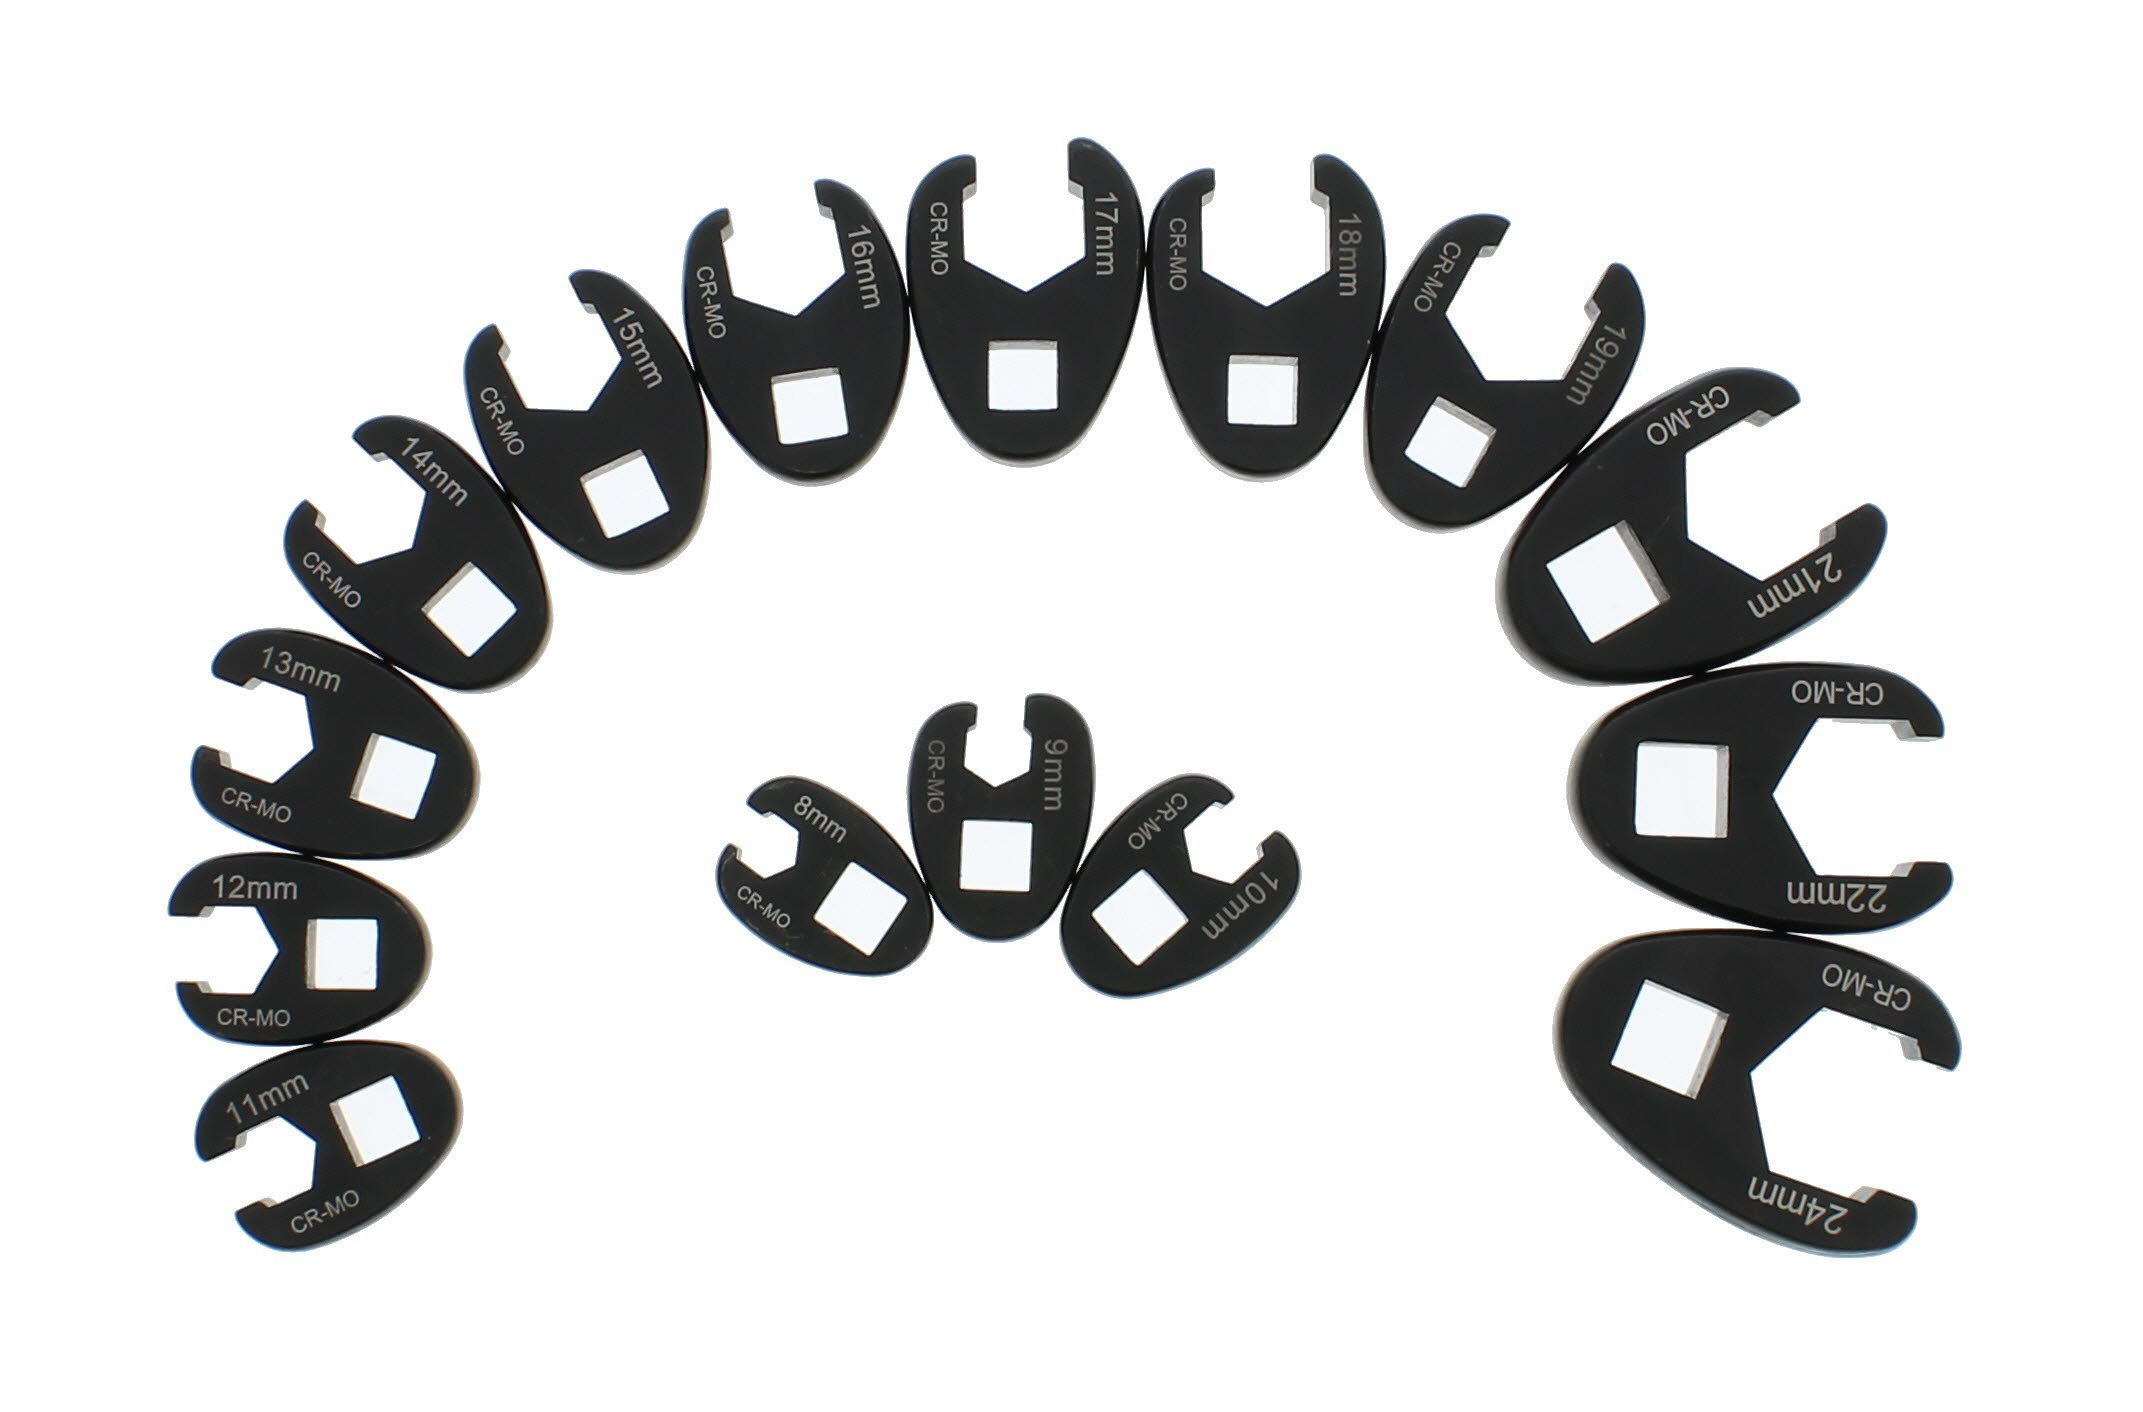 ABN Jumbo Crowfoot Flare Nut Wrench Set Metric 15-Piece Tool Kit for 3/8in and 1/2in Drive Ratchet by ABN (Image #3)